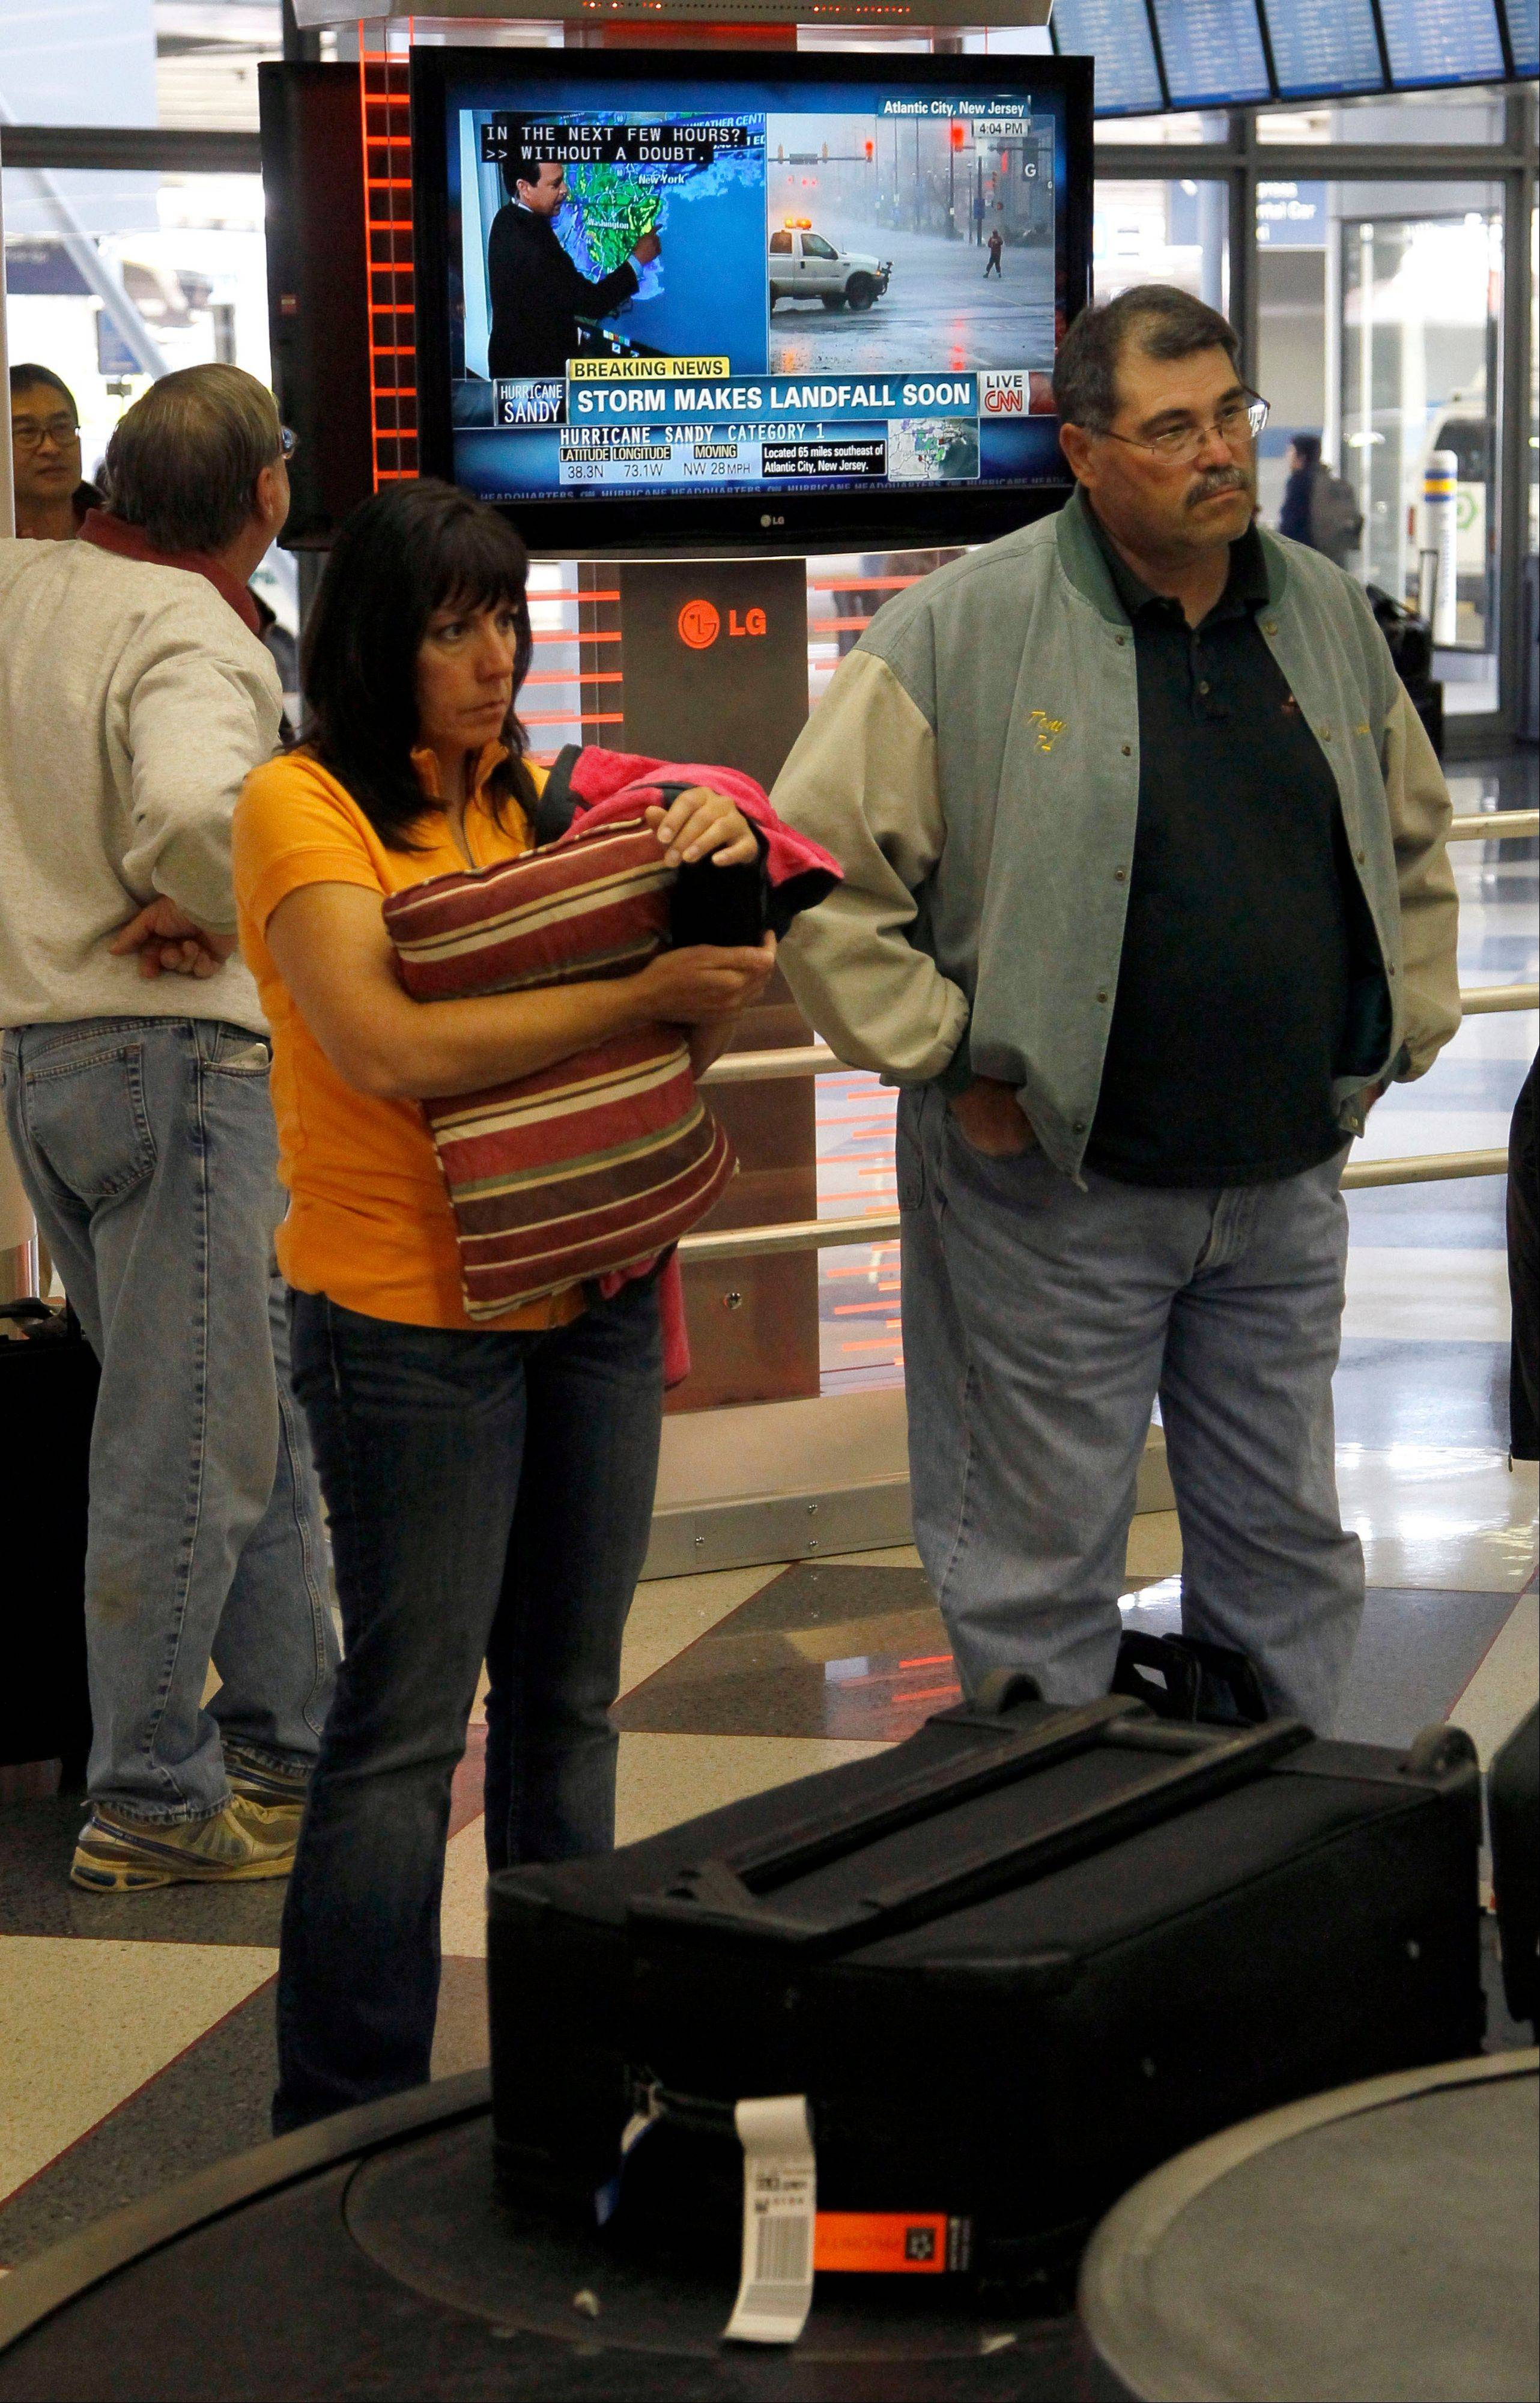 Travelers wait for their luggage at Chicago's O'Hare International Airport as a live update on Hurricane Sandy is broadcast, Monday.